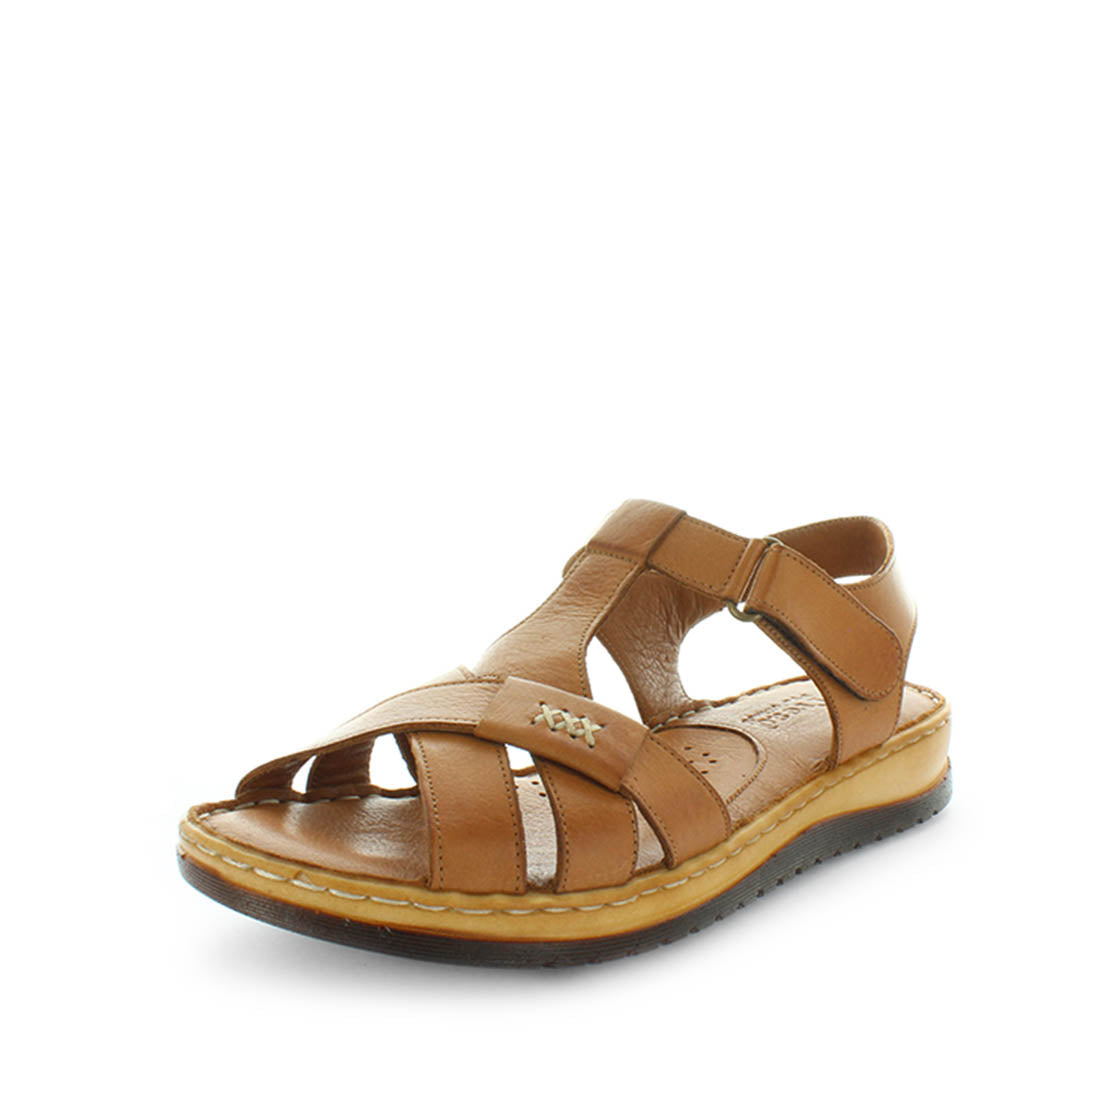 BORONIA by SOFT TREAD ALLINO - iShoes - Sale, Women's Shoes, Women's Shoes: Sandals - FOOTWEAR-FOOTWEAR